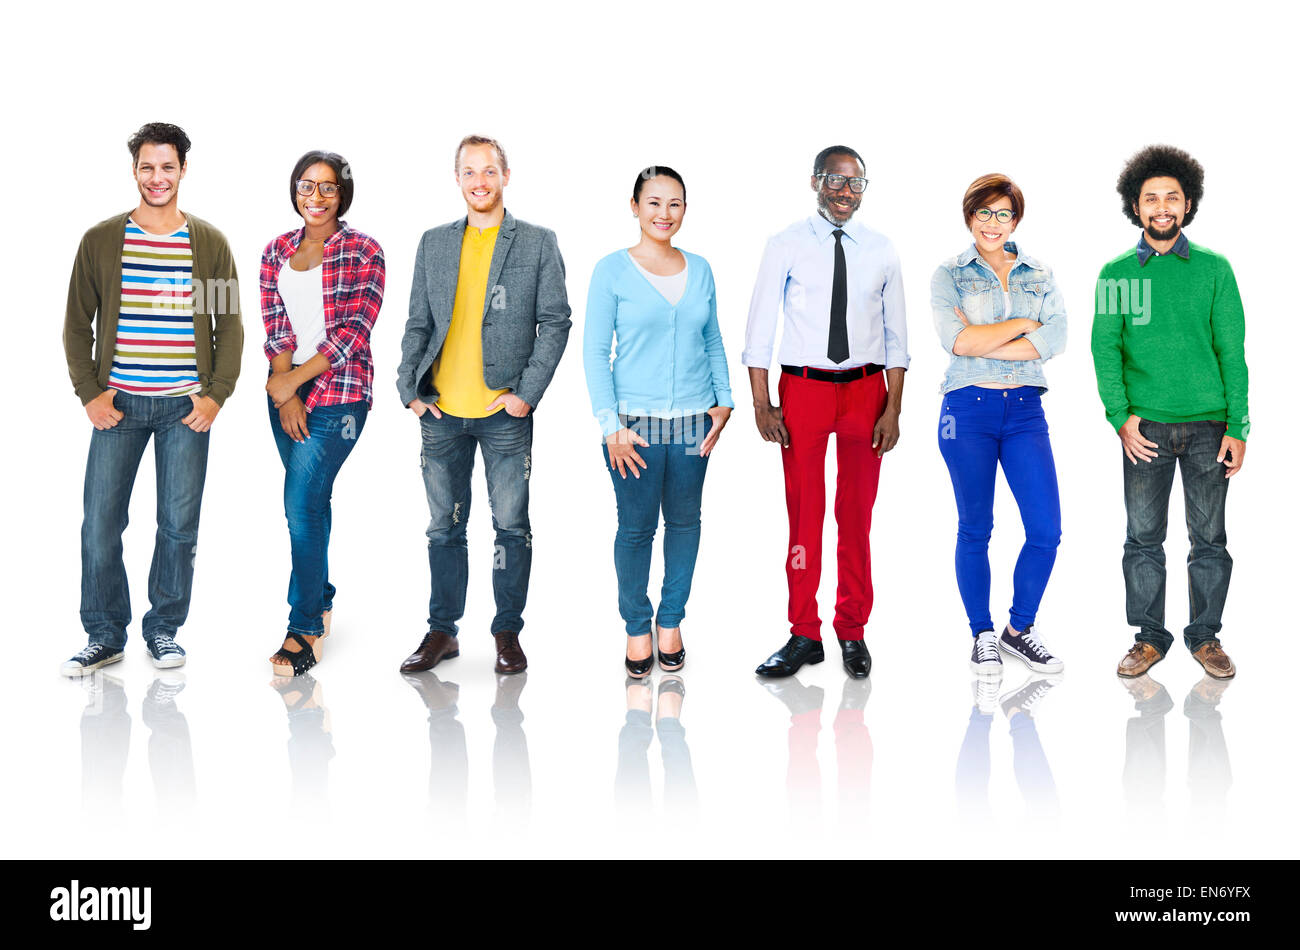 Group of Multiethnic Diverse Cheerful People - Stock Image